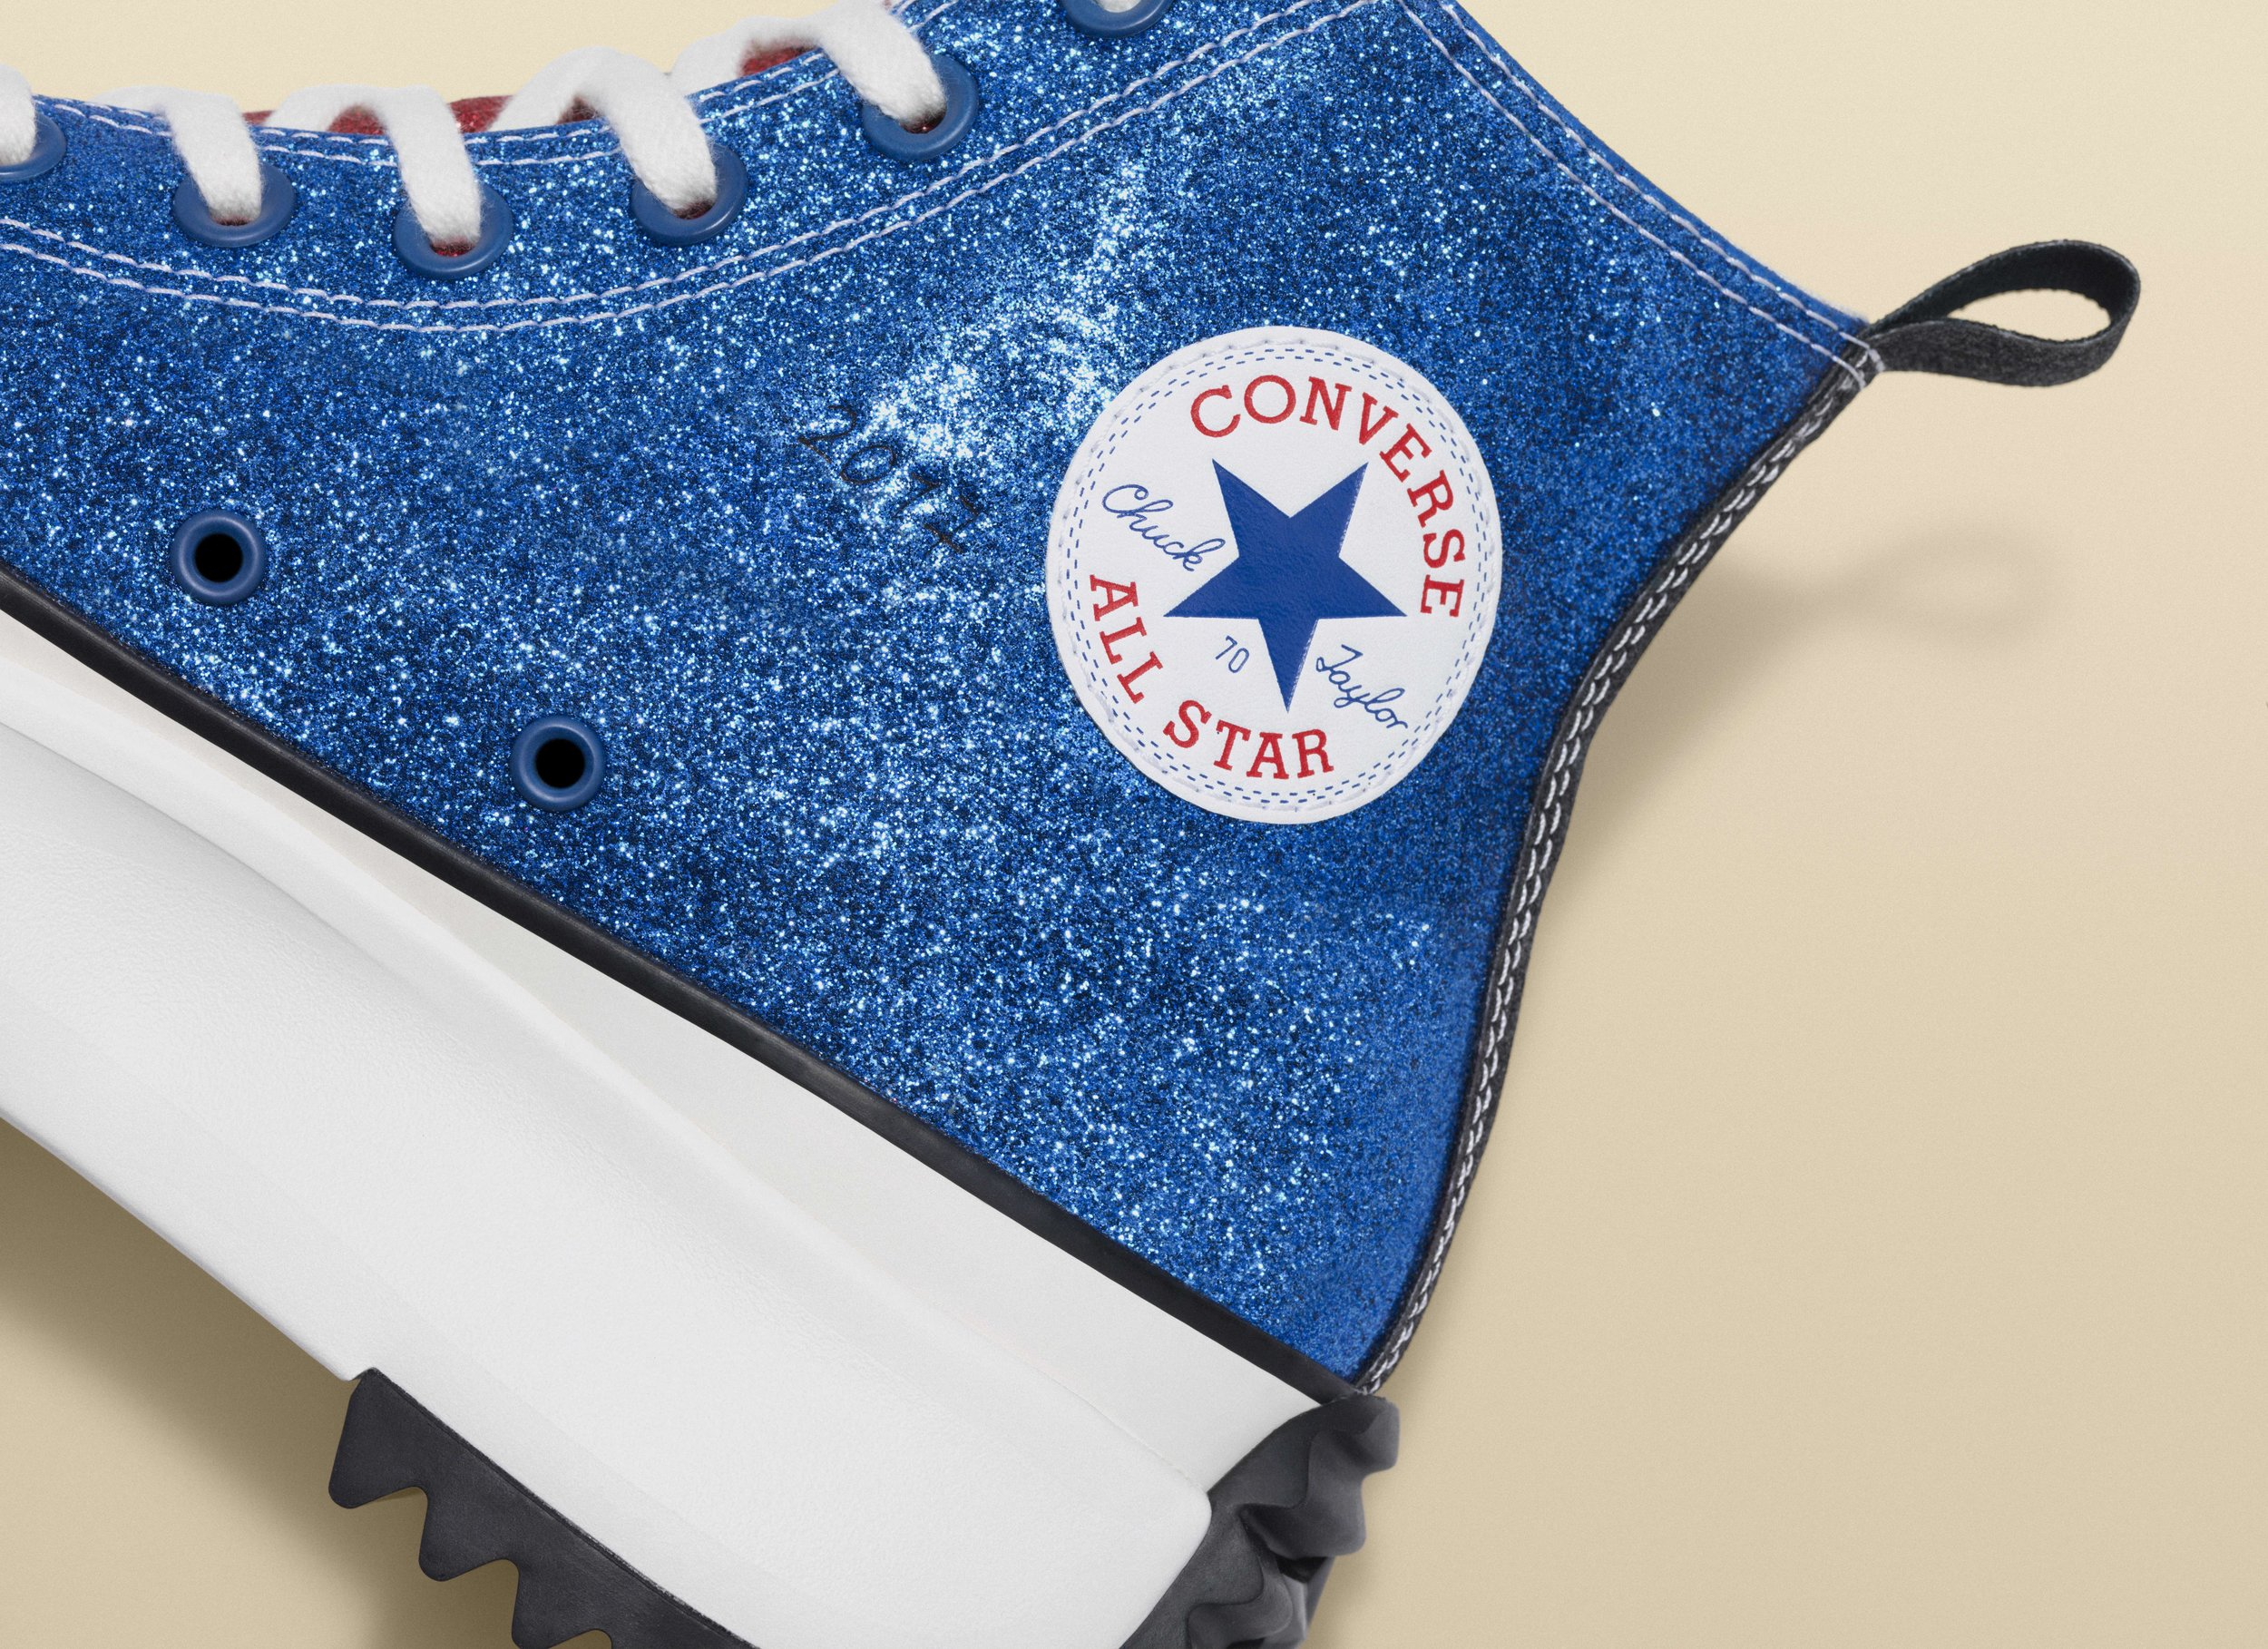 Cop or Can  Converse x JW Anderson Run Star Hike — CNK DailyChicksNKicks c4890709c